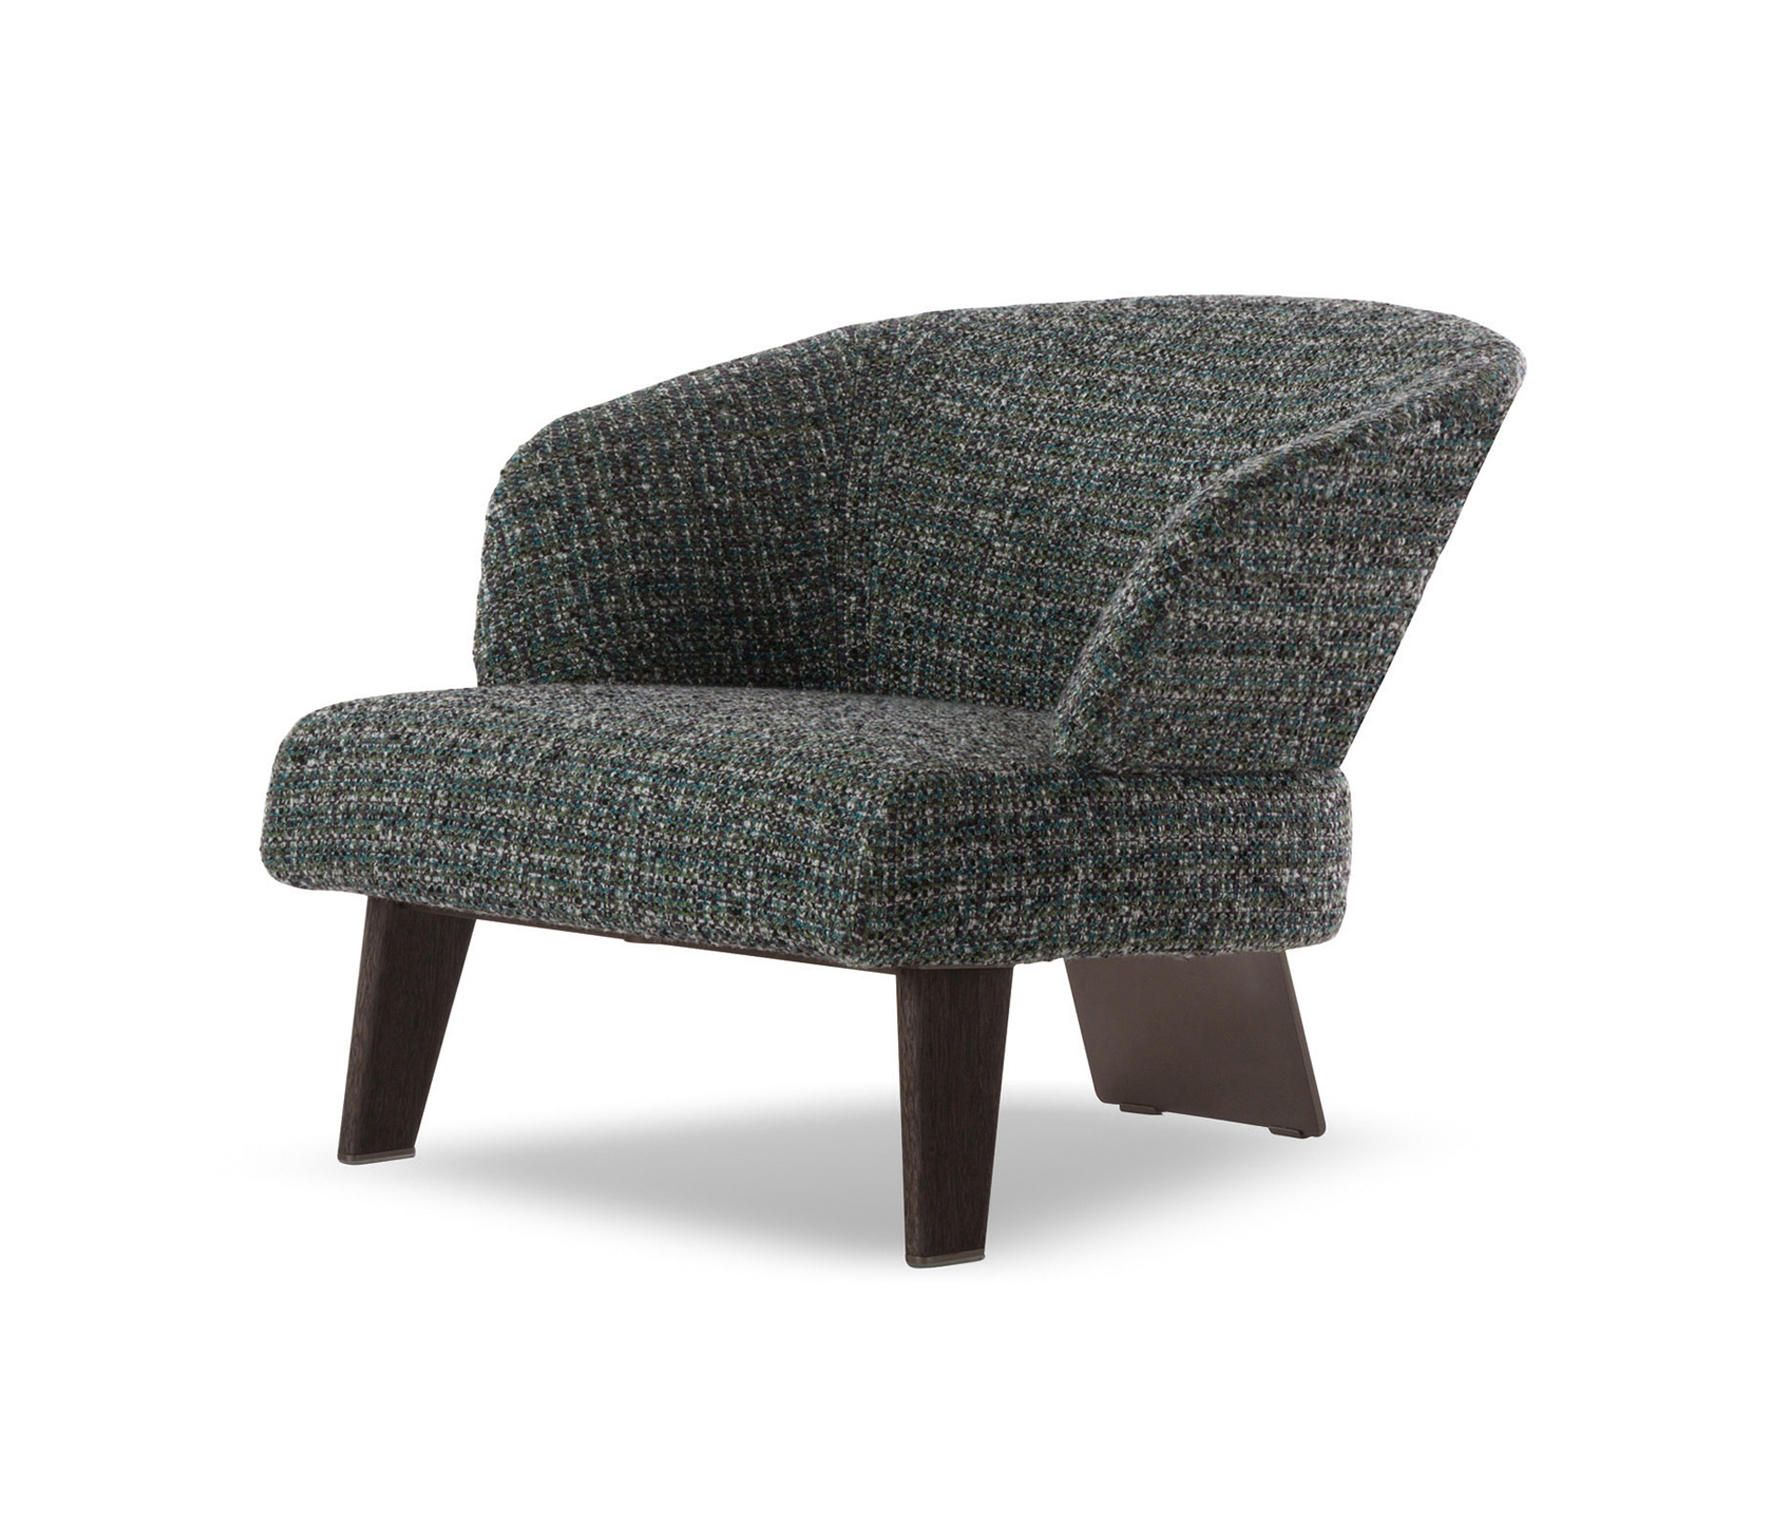 Creed Large Armchair By Minotti Lounge Chairs Large Armchair